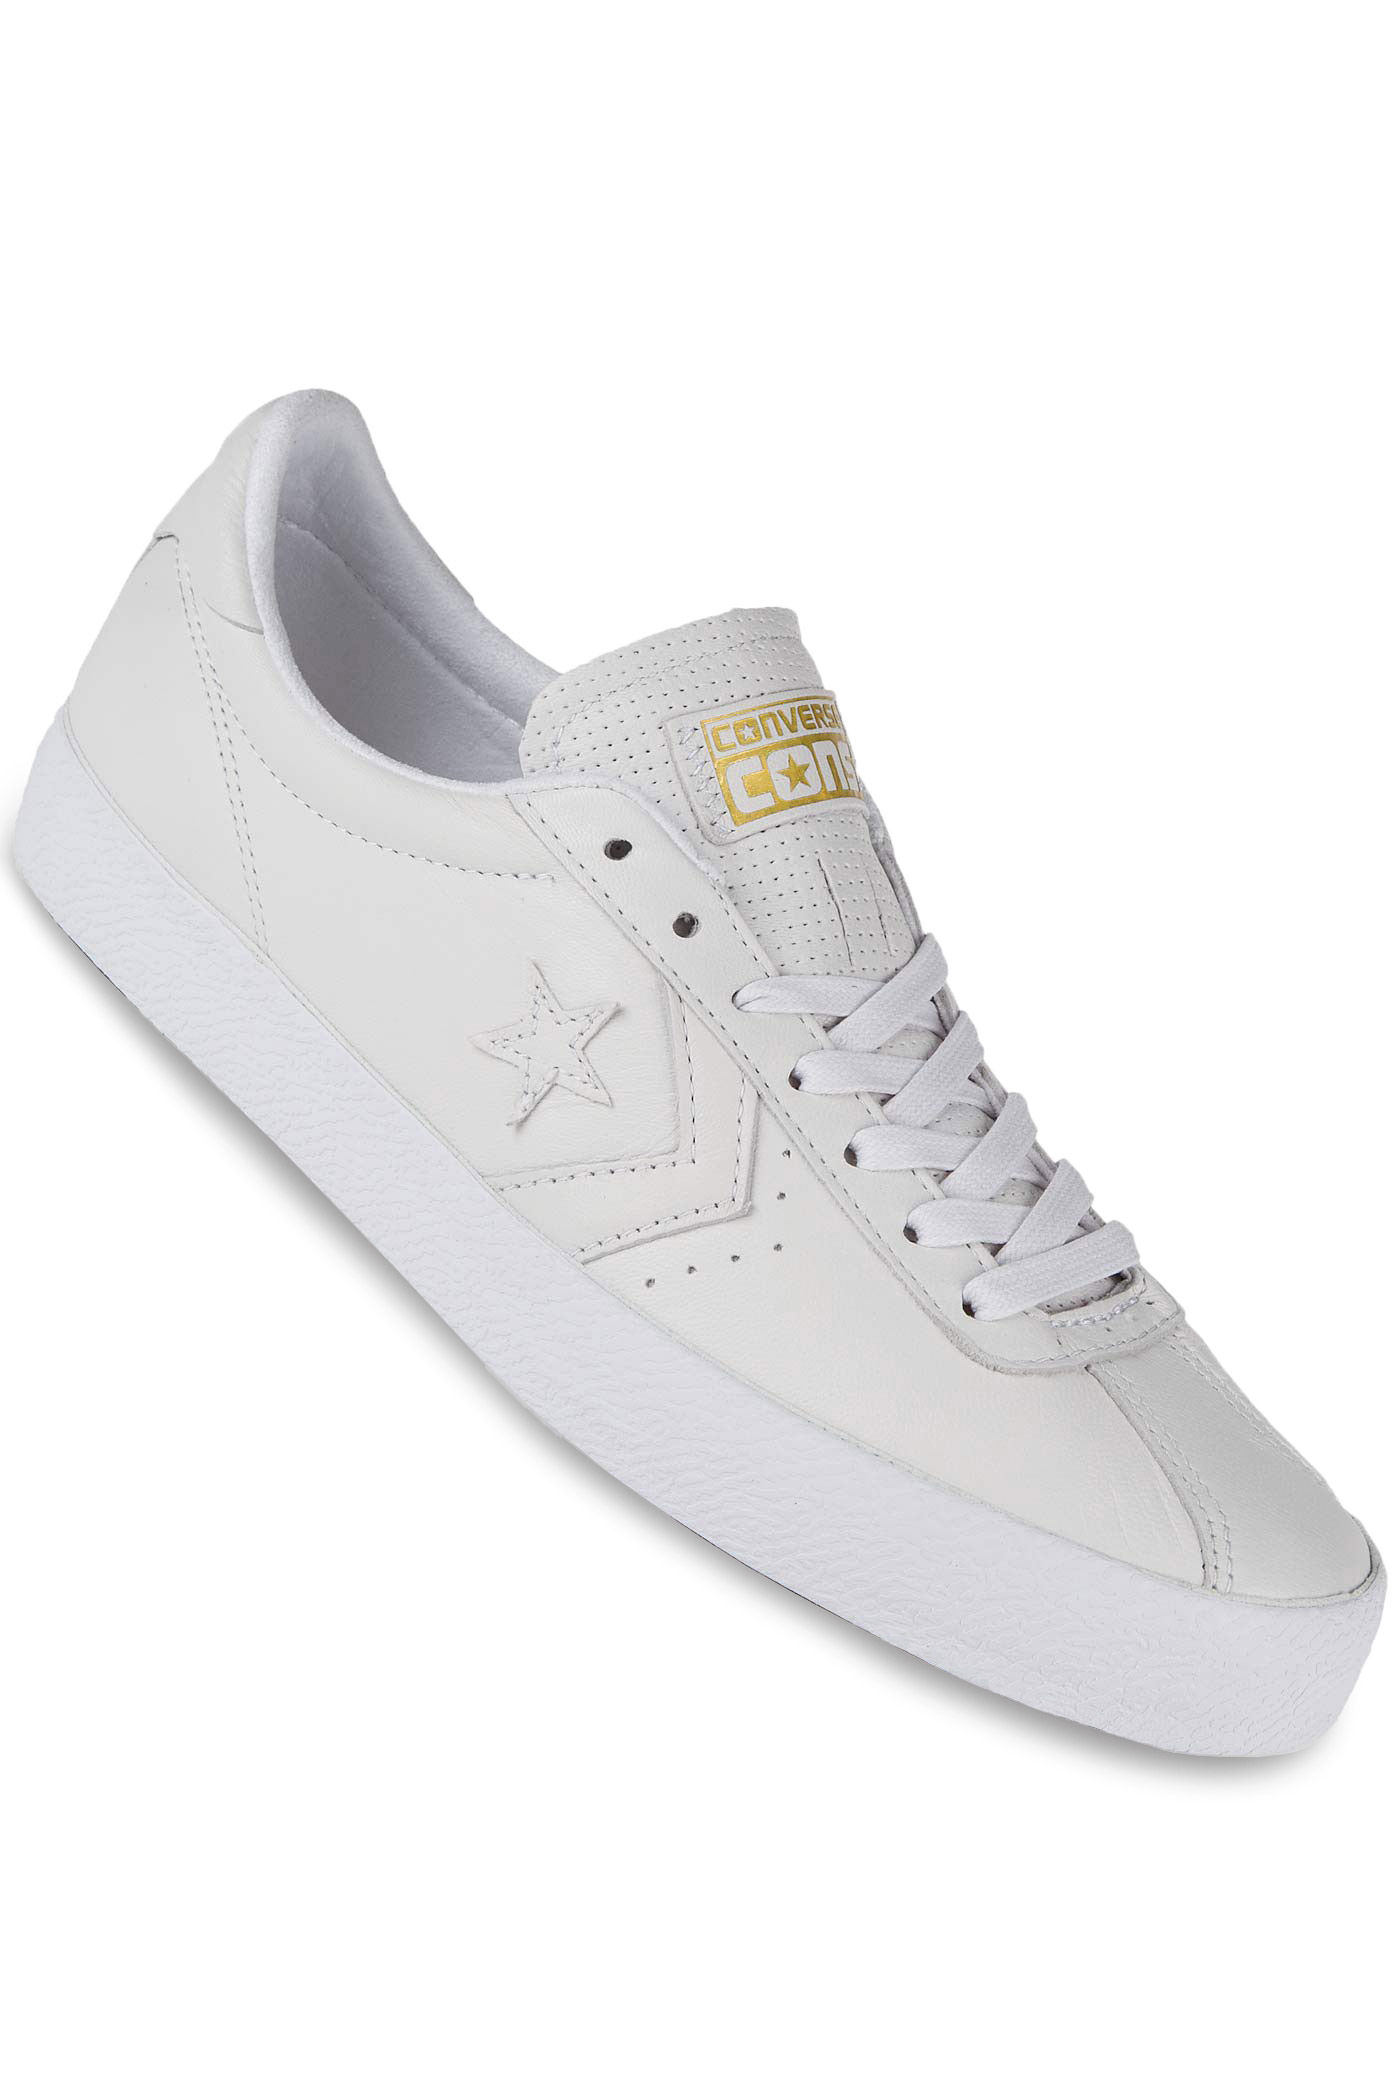 Converse CONS Breakpoint Shoes (white white gold) buy at ...